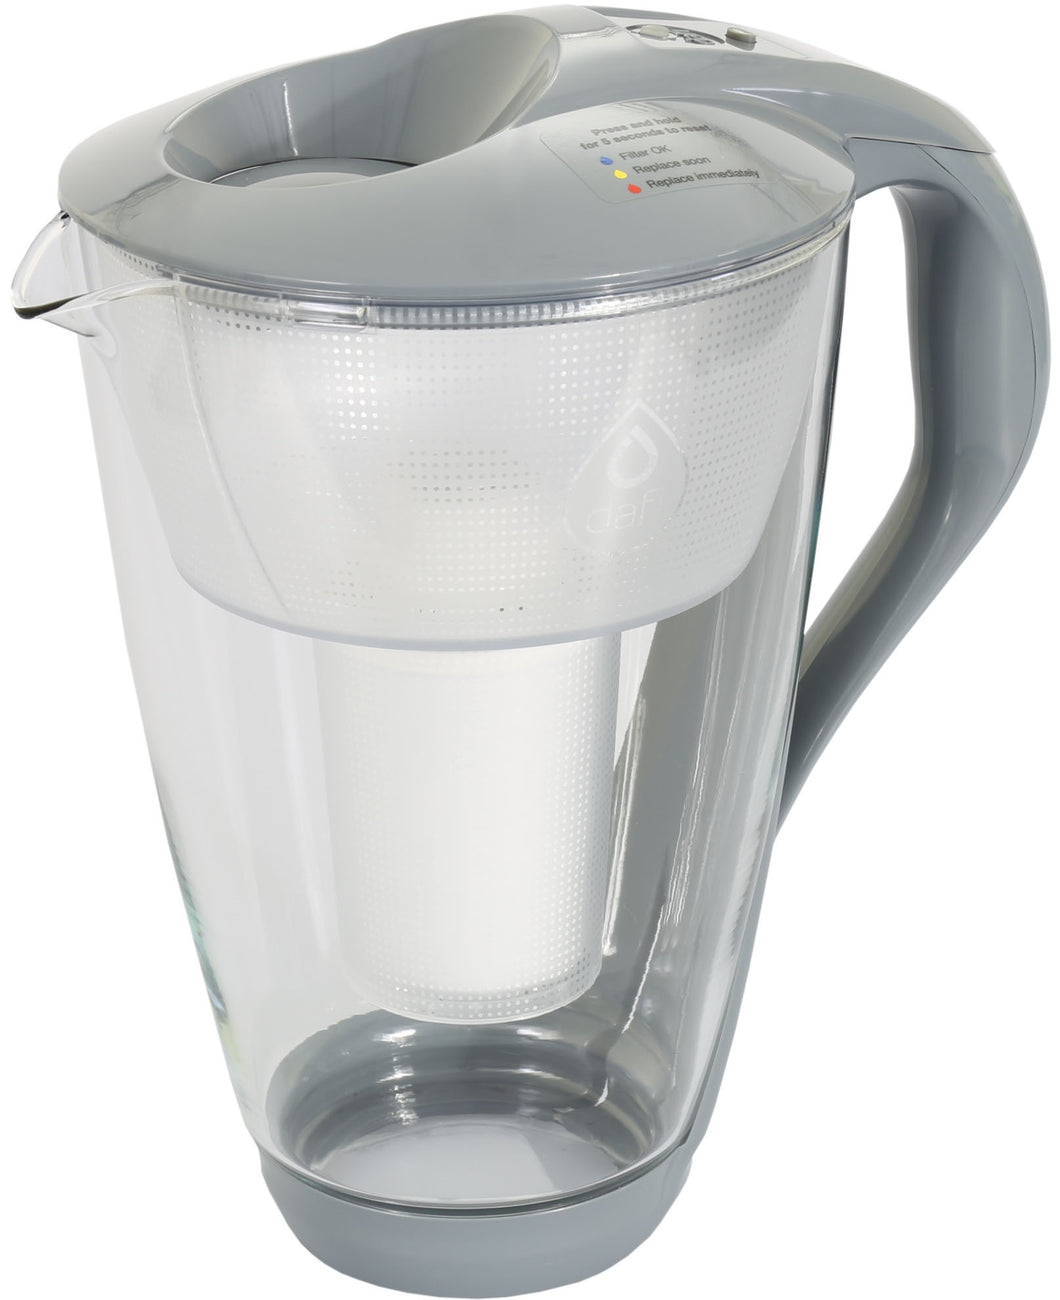 Water Filter Glass Jug Dafi Crystal Classic 2.0L with Free Filter Cartridge - Graphite